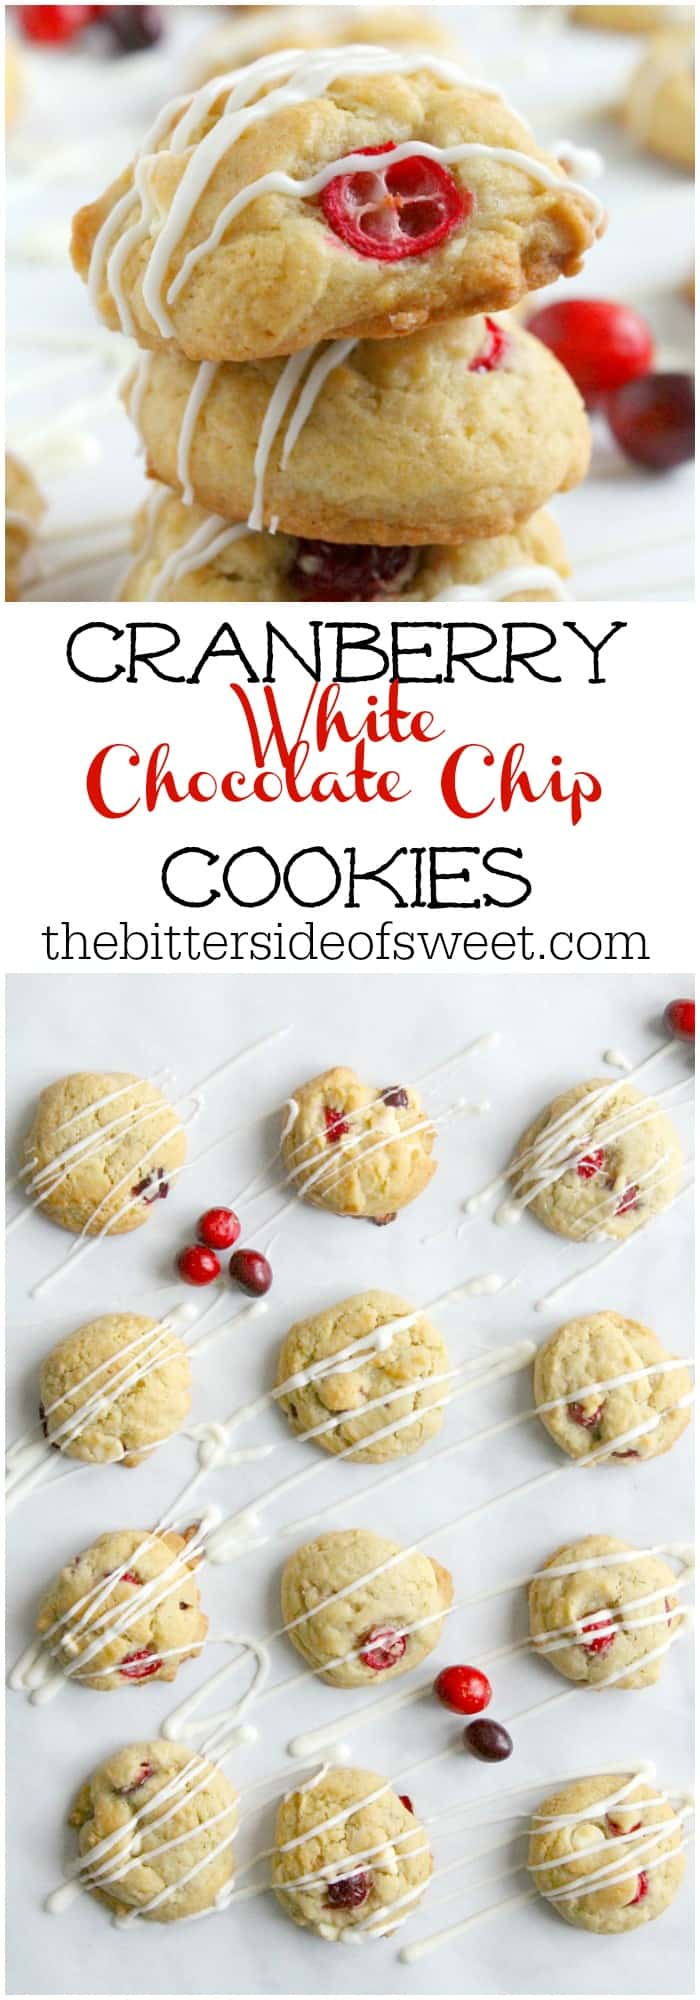 Cranberry White Chocolate Chip Cookies #ChristmasCookies ...